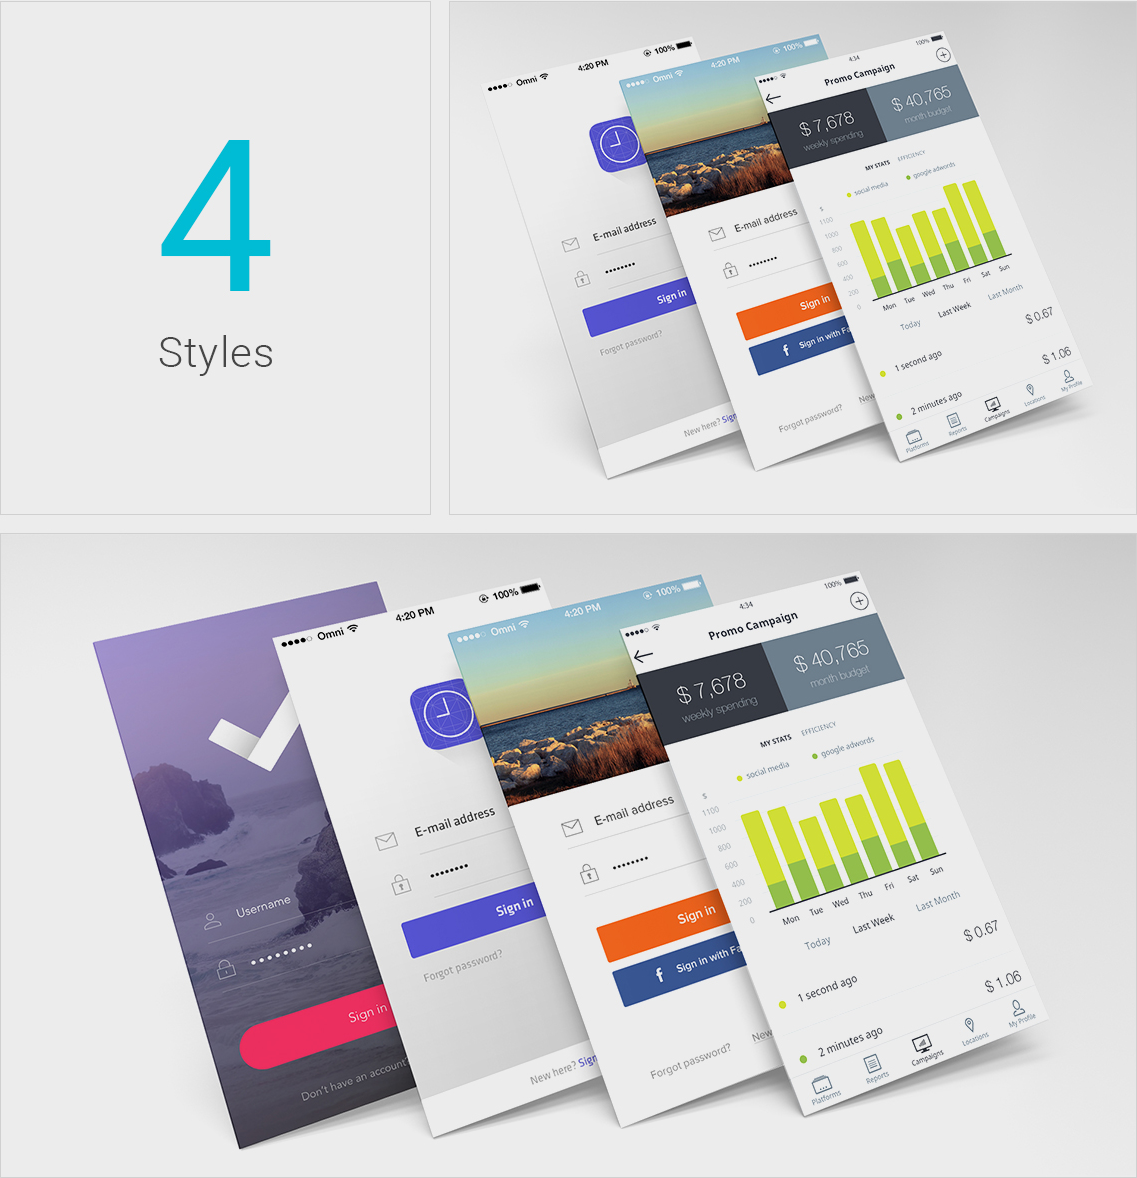 Free Perspective Mobile App Screens Mockup Freebies Fribly Mobile App Free Graphic Design App